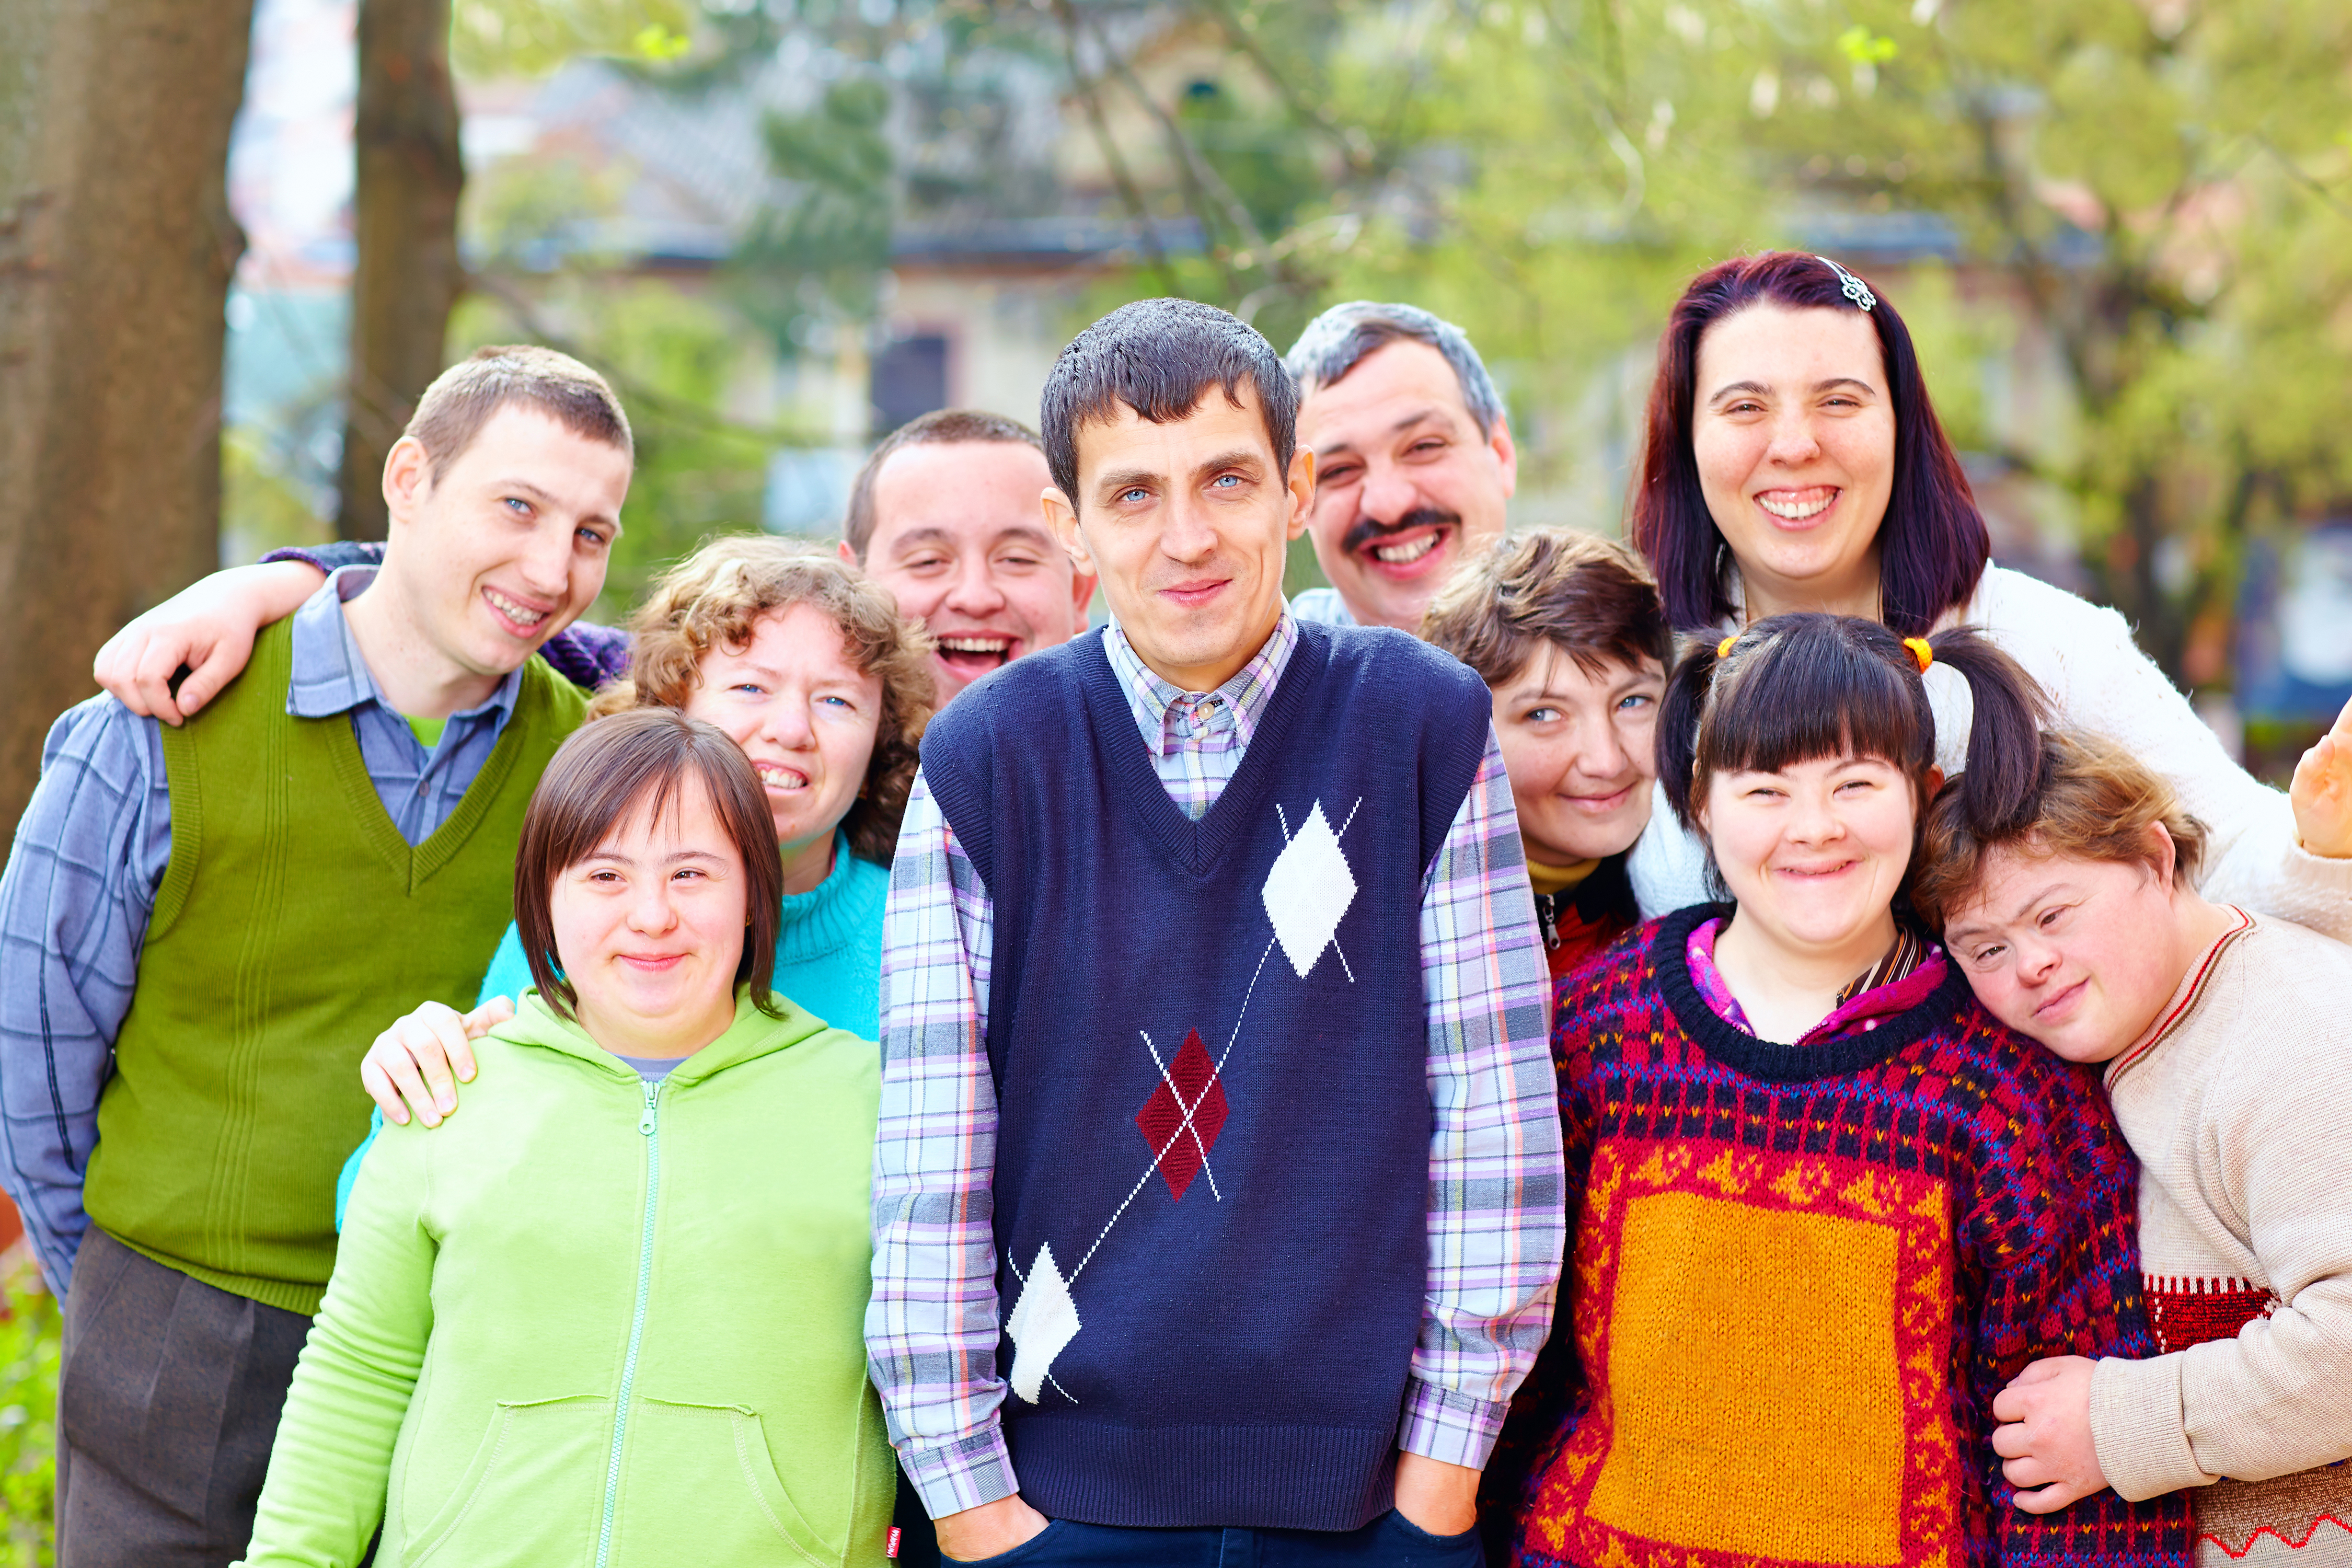 A group of people with an intellectual disability